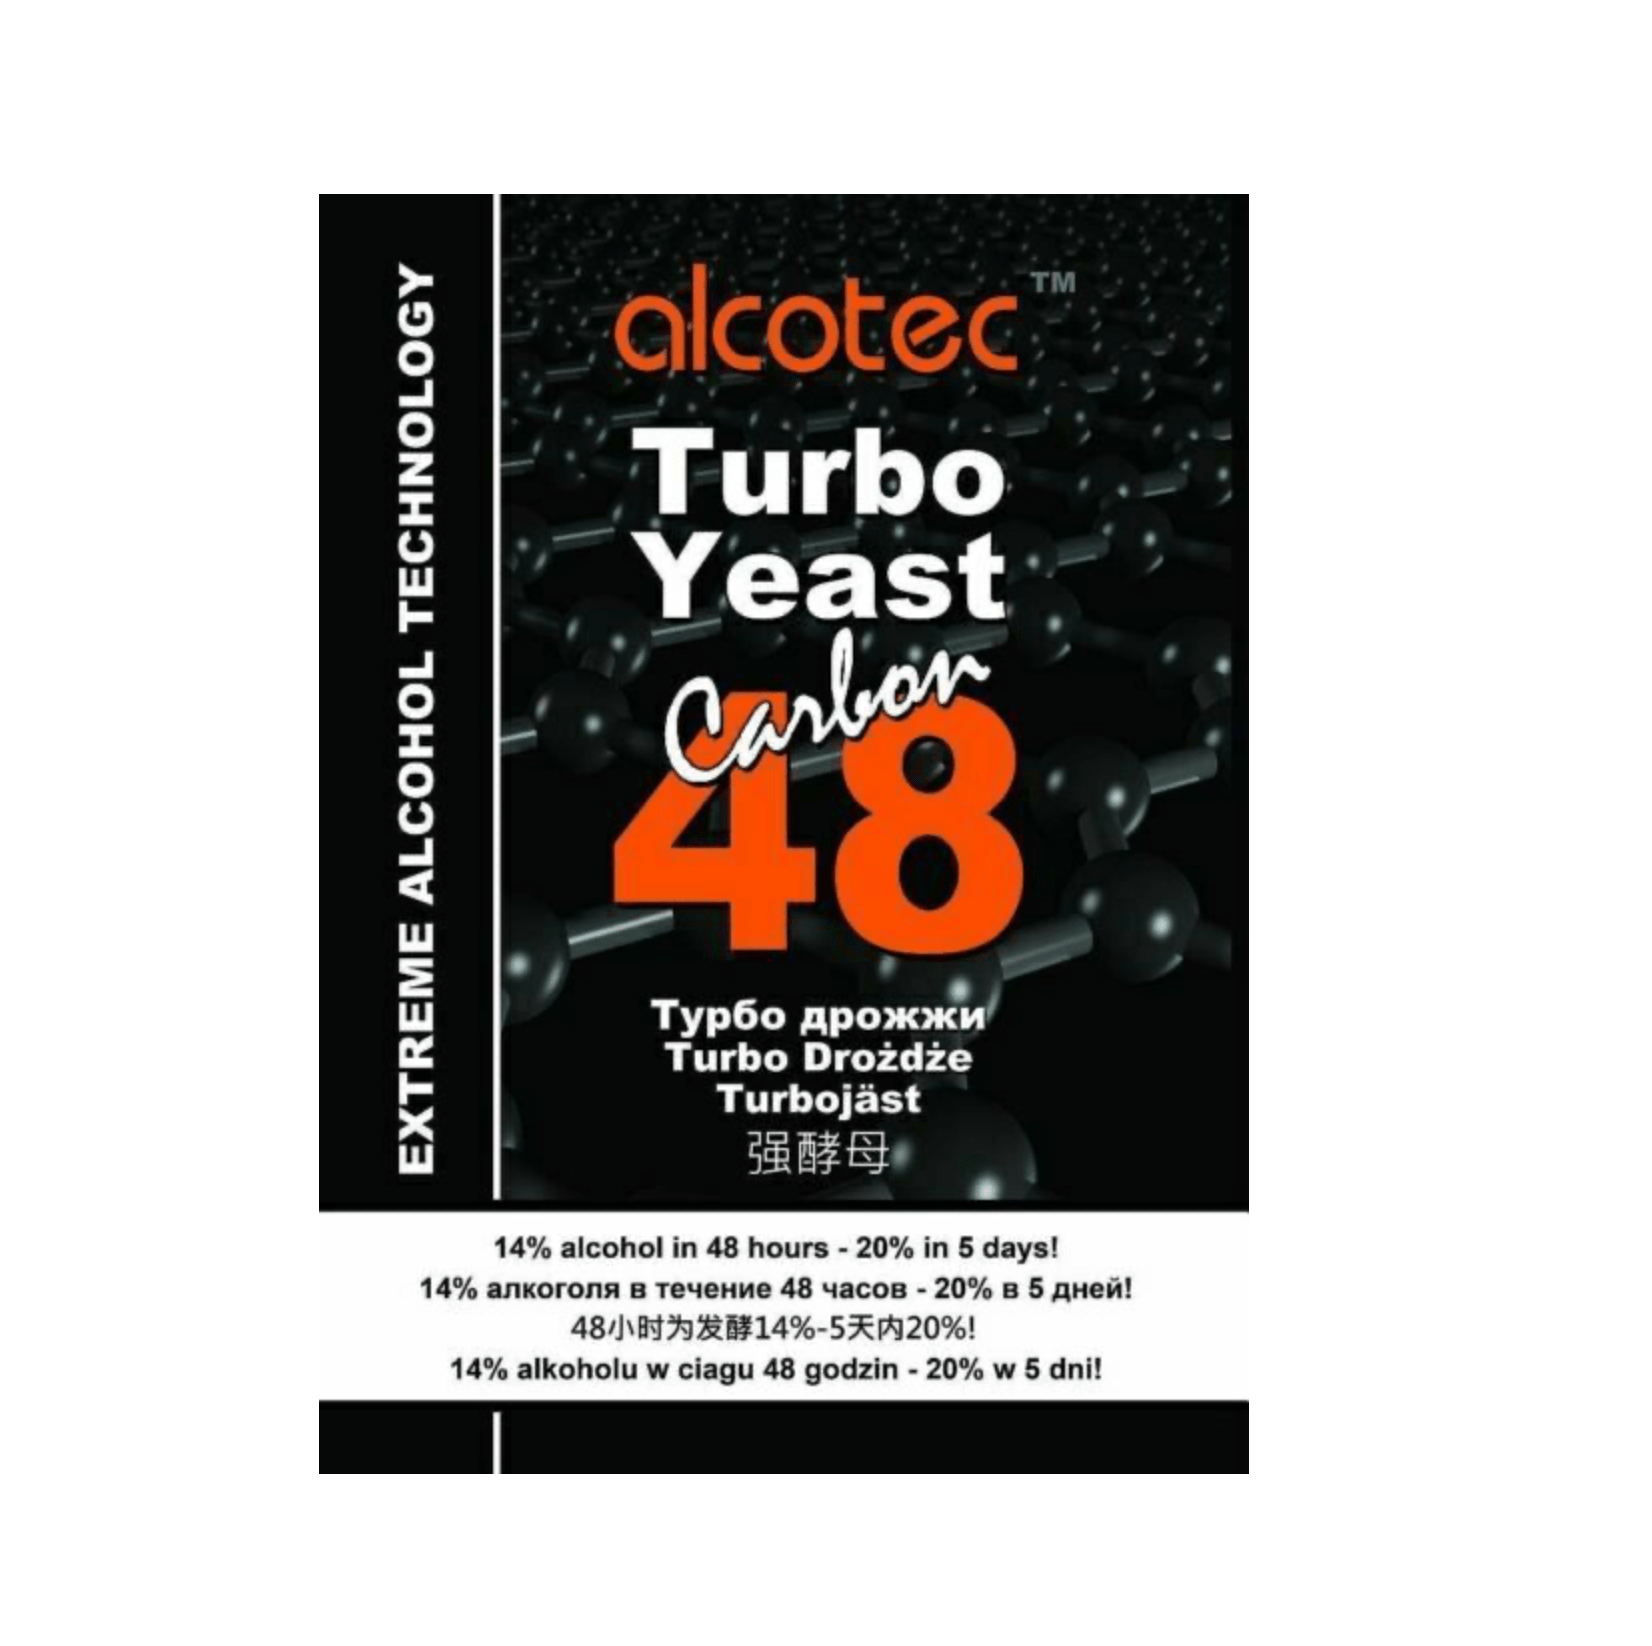 Yeast 48hr Turbo Carbon - Alcotec